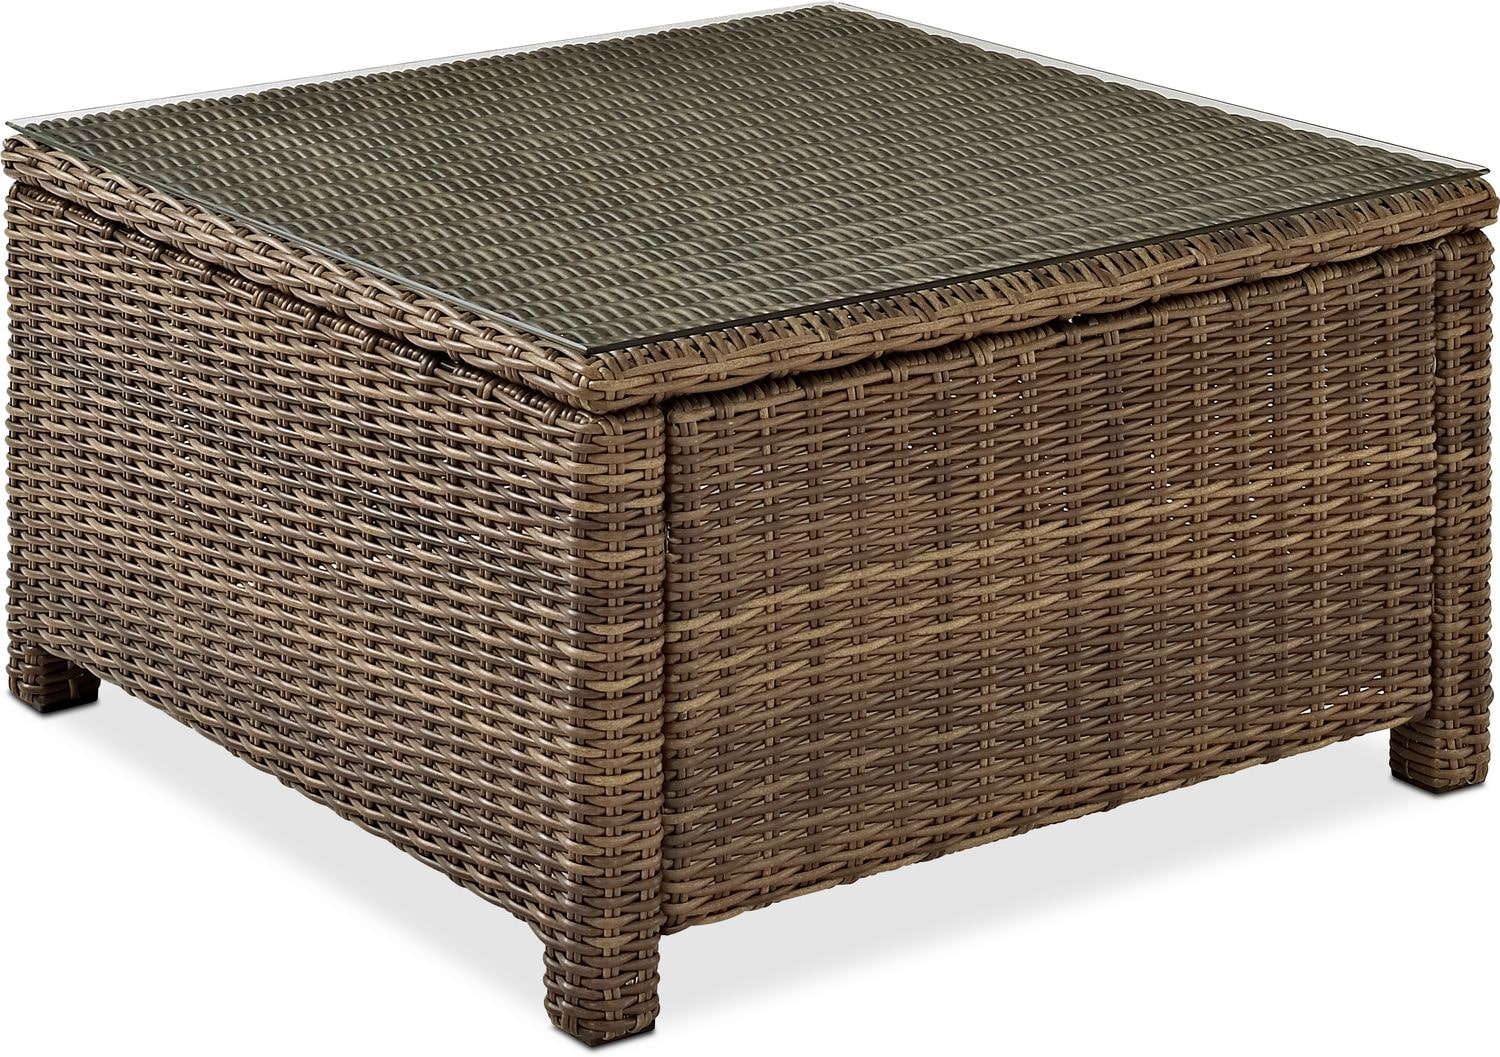 Outdoor Furniture - Destin Outdoor Square Coffee Table - Brown